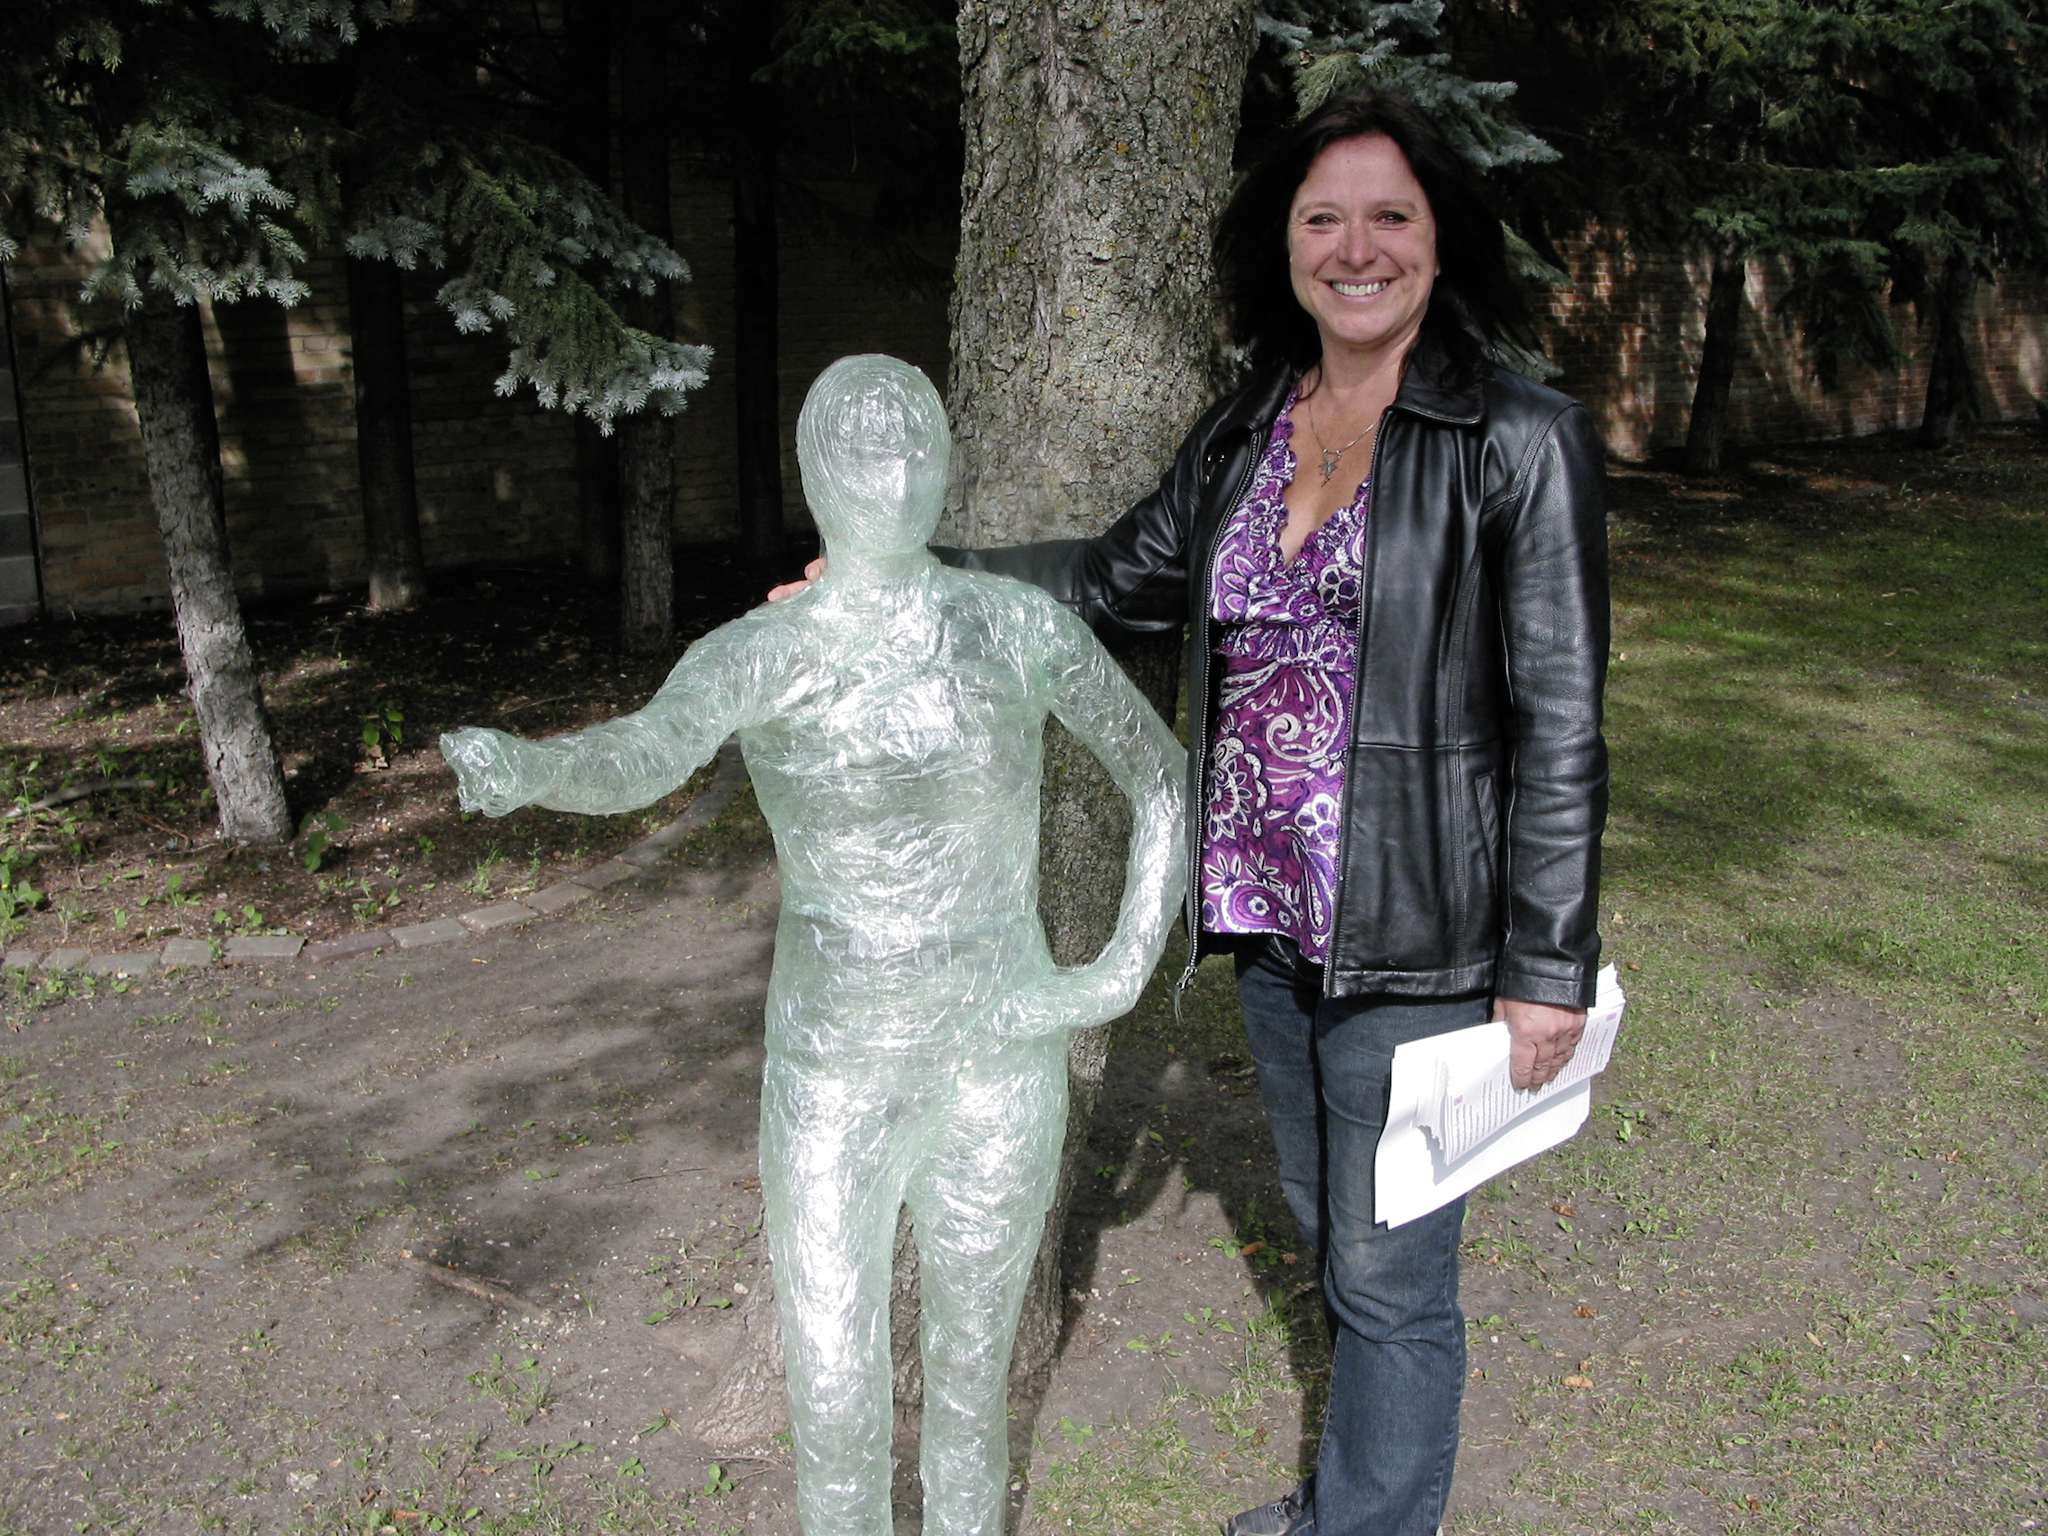 Portage la Prairie artists Yvette Cuthbert, shown here with a human lantern created for this year's Celebrate the Night event, was named the Arts/Cultural Person of the Year by the Portage & District Chamber of Commerce.